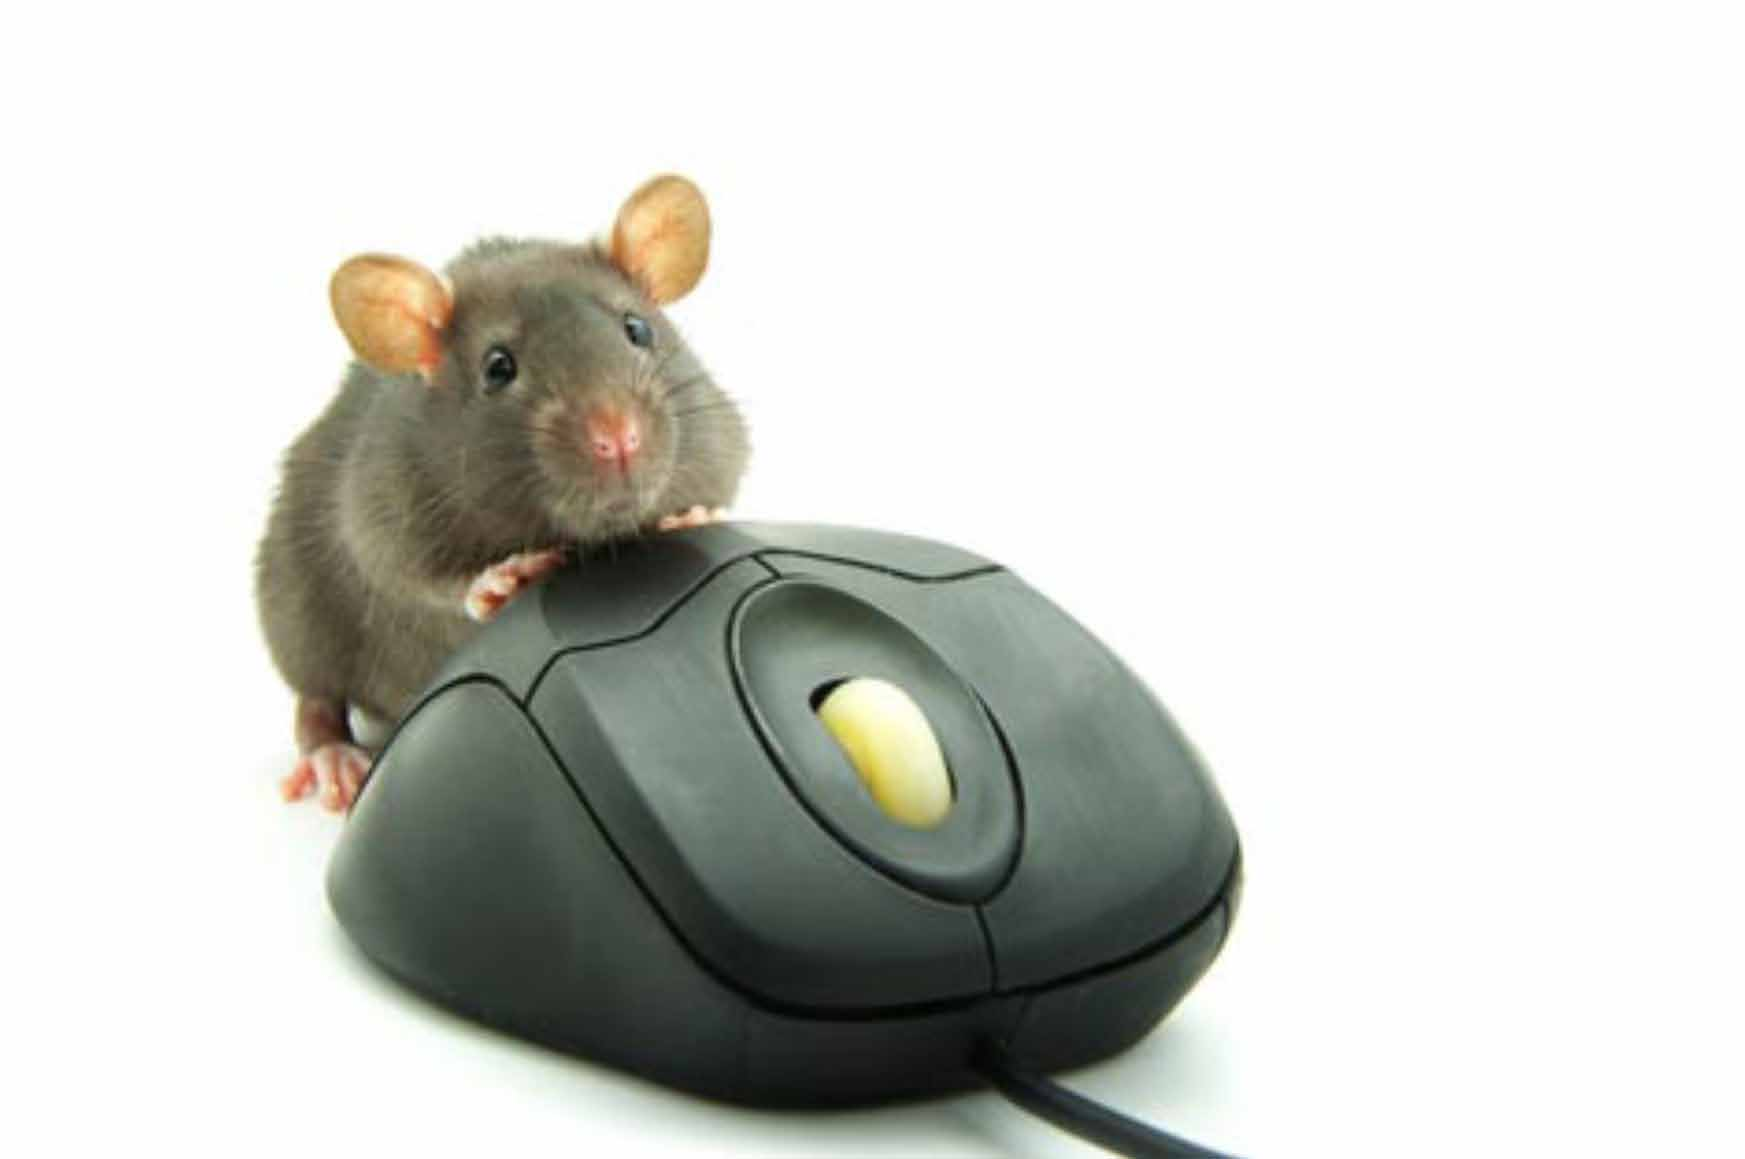 Your computer mouse knows when you're lying